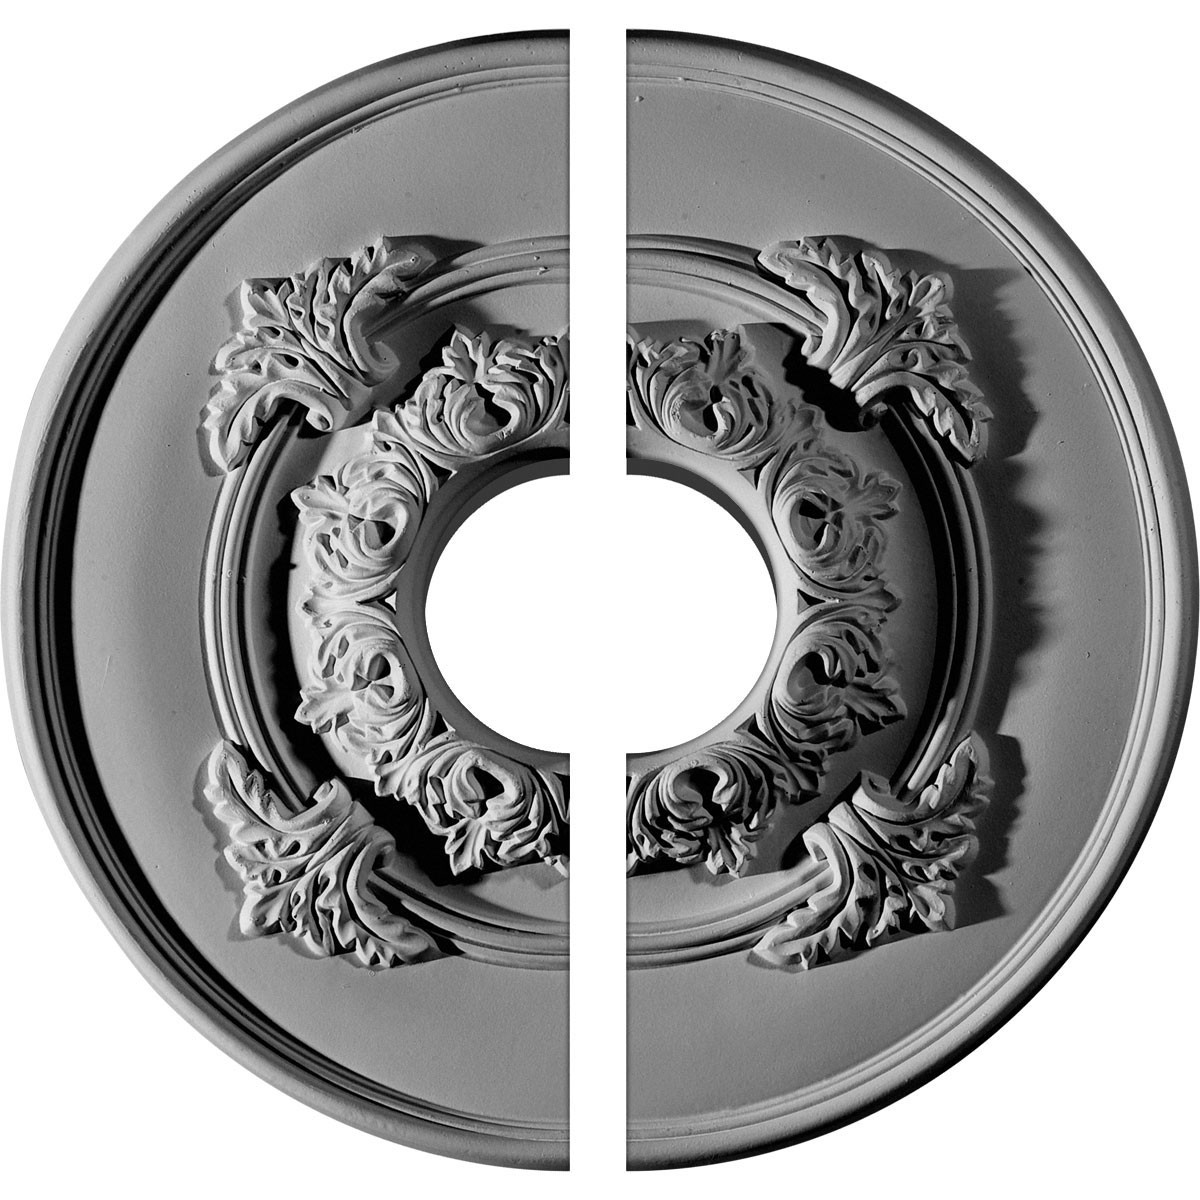 """EM-CM13MO2-03500 - 13 3/4""""OD x 3 1/2""""ID x 1""""P Monique Ceiling Medallion, Two Piece (Fits Canopies up to 3 3/4"""")"""